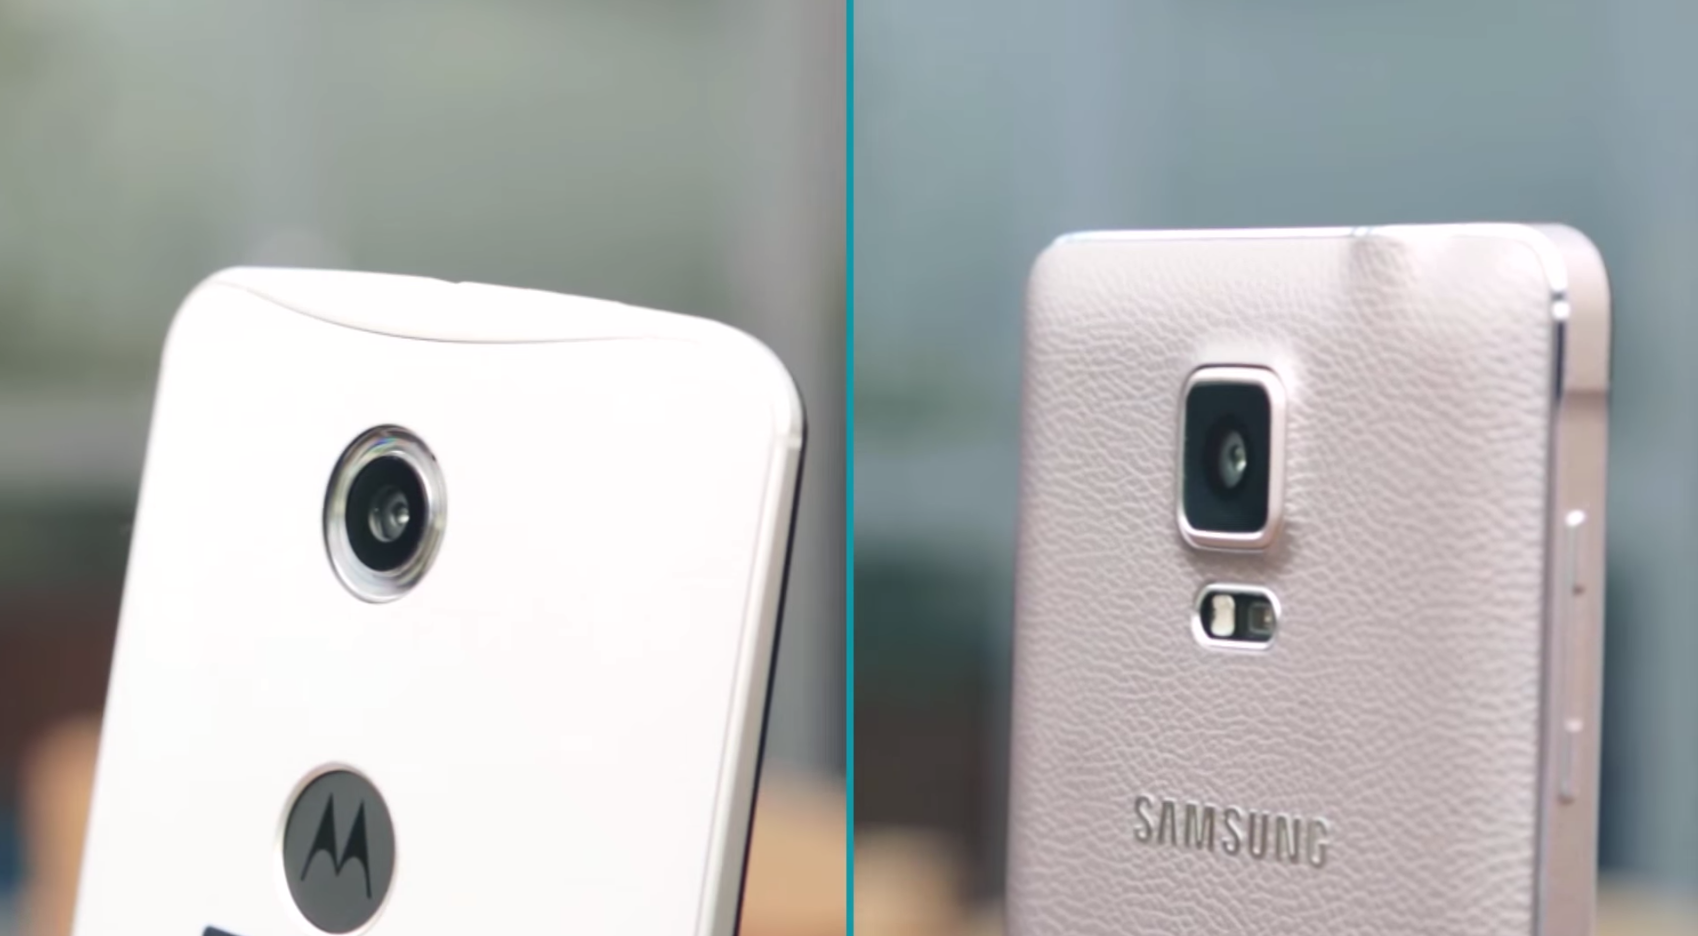 Nexus 6 Vs Note 4 6 6